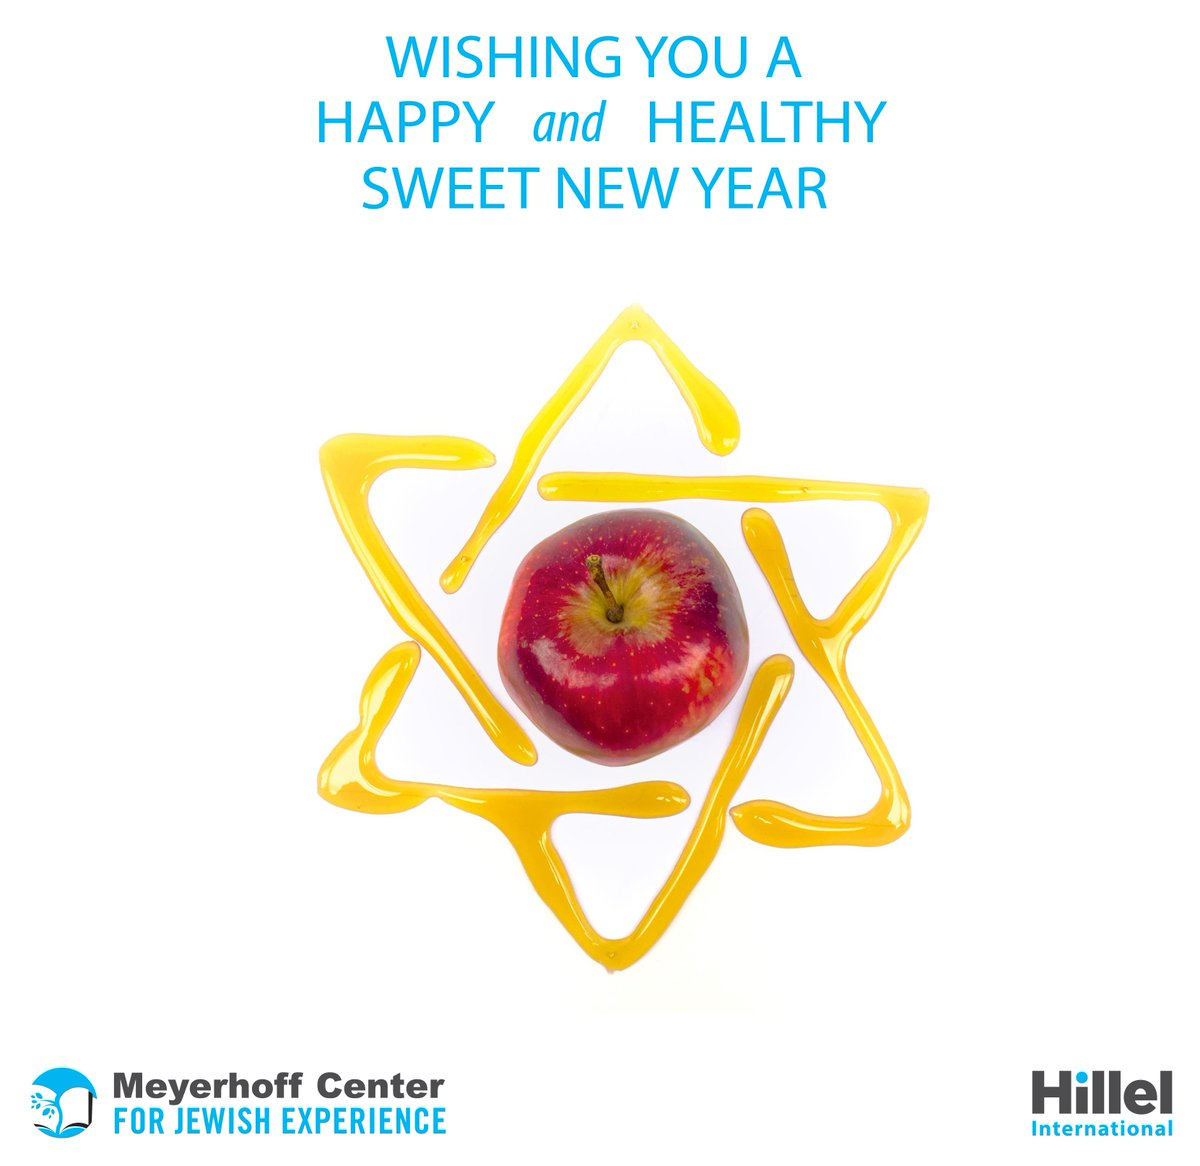 Happy and healthy sweet new year, everyone! #RoshHashanah